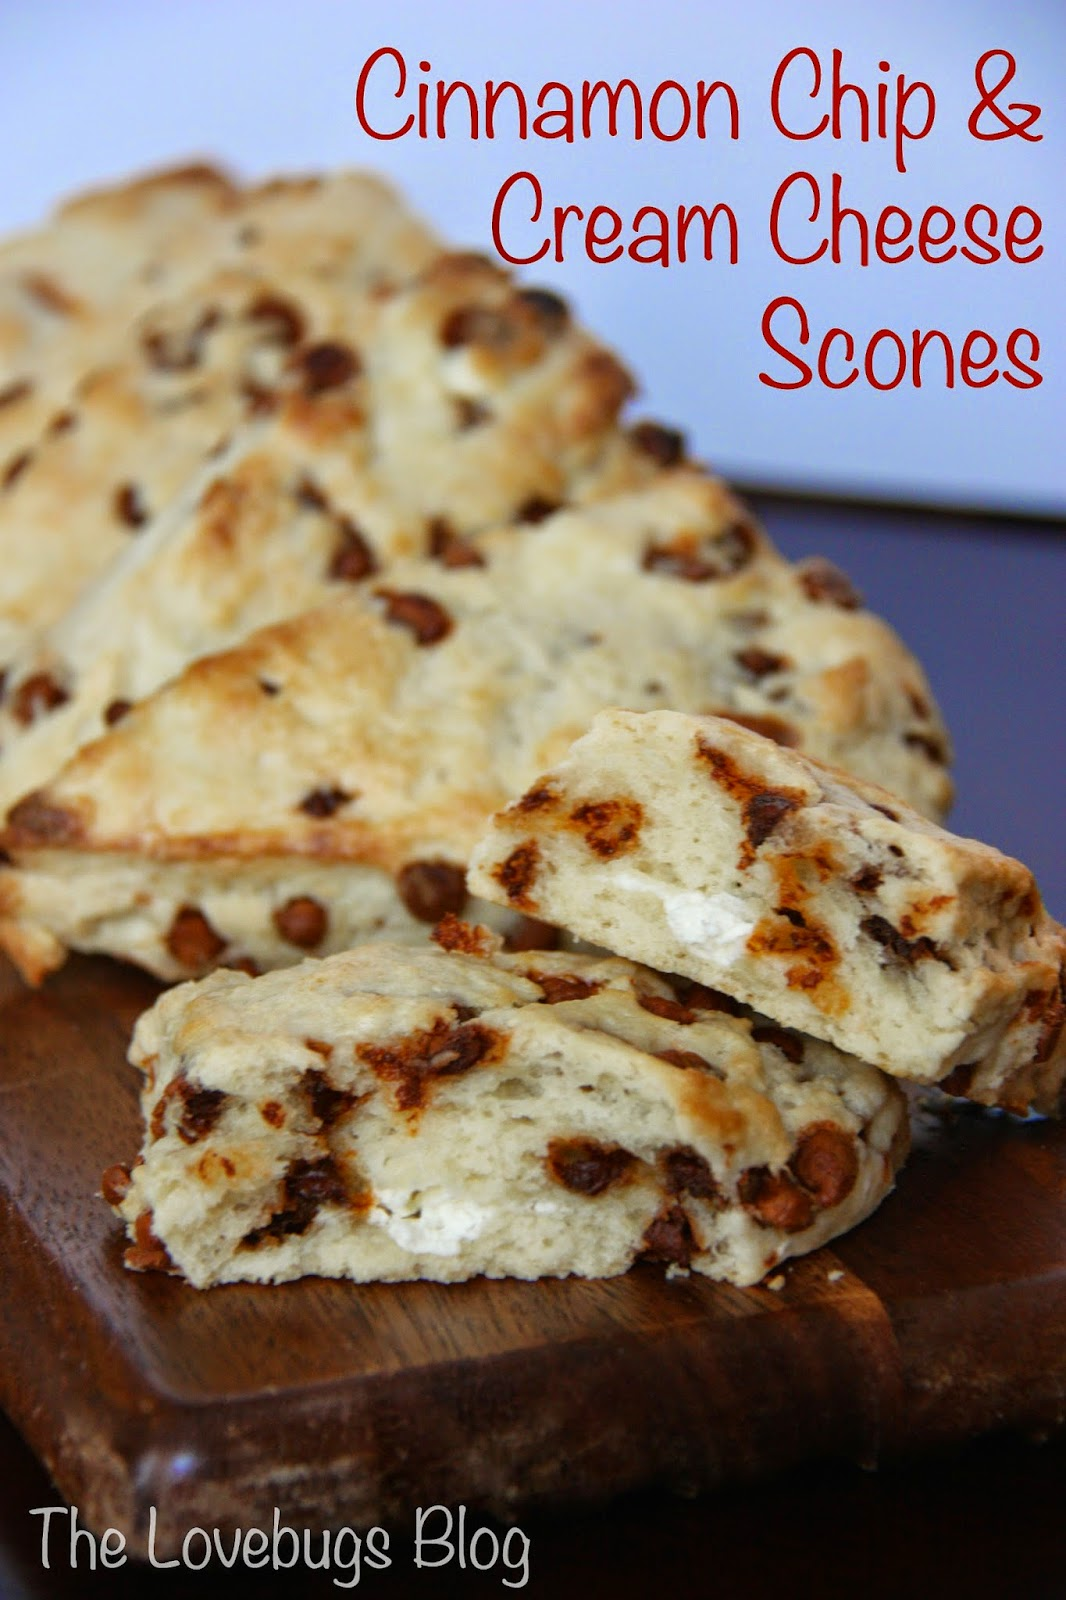 Cinnamon Chip & Cream Cheese Scone Recipe